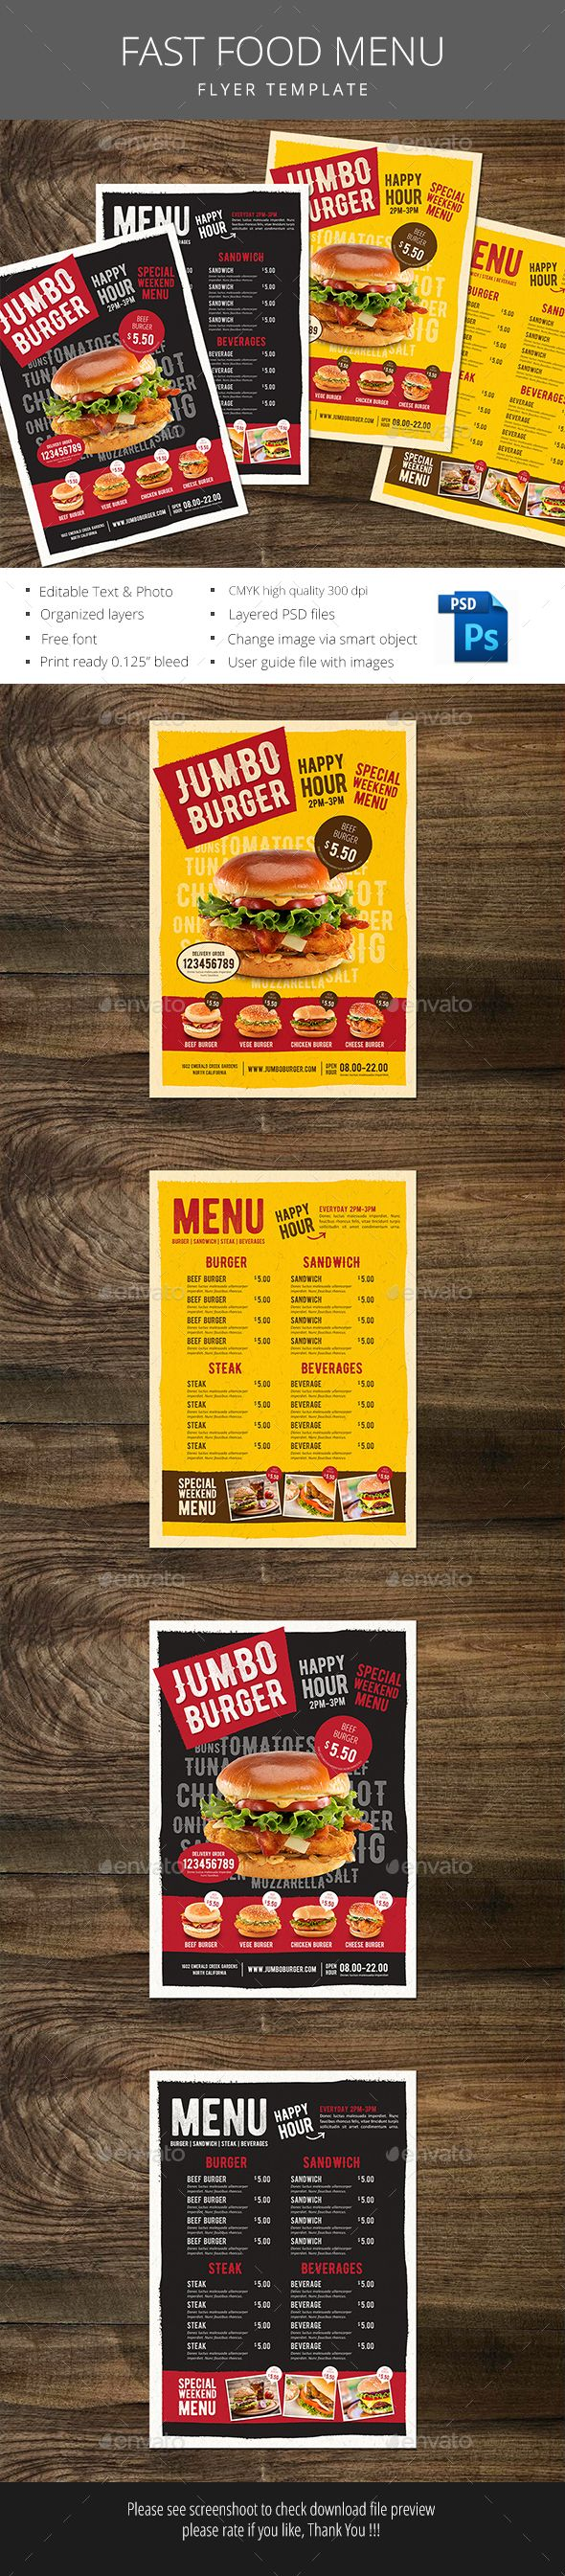 Fast Food Menu Template PSD. Download here: http://graphicriver.net/item/fast-food-menu/15992951?ref=ksioks